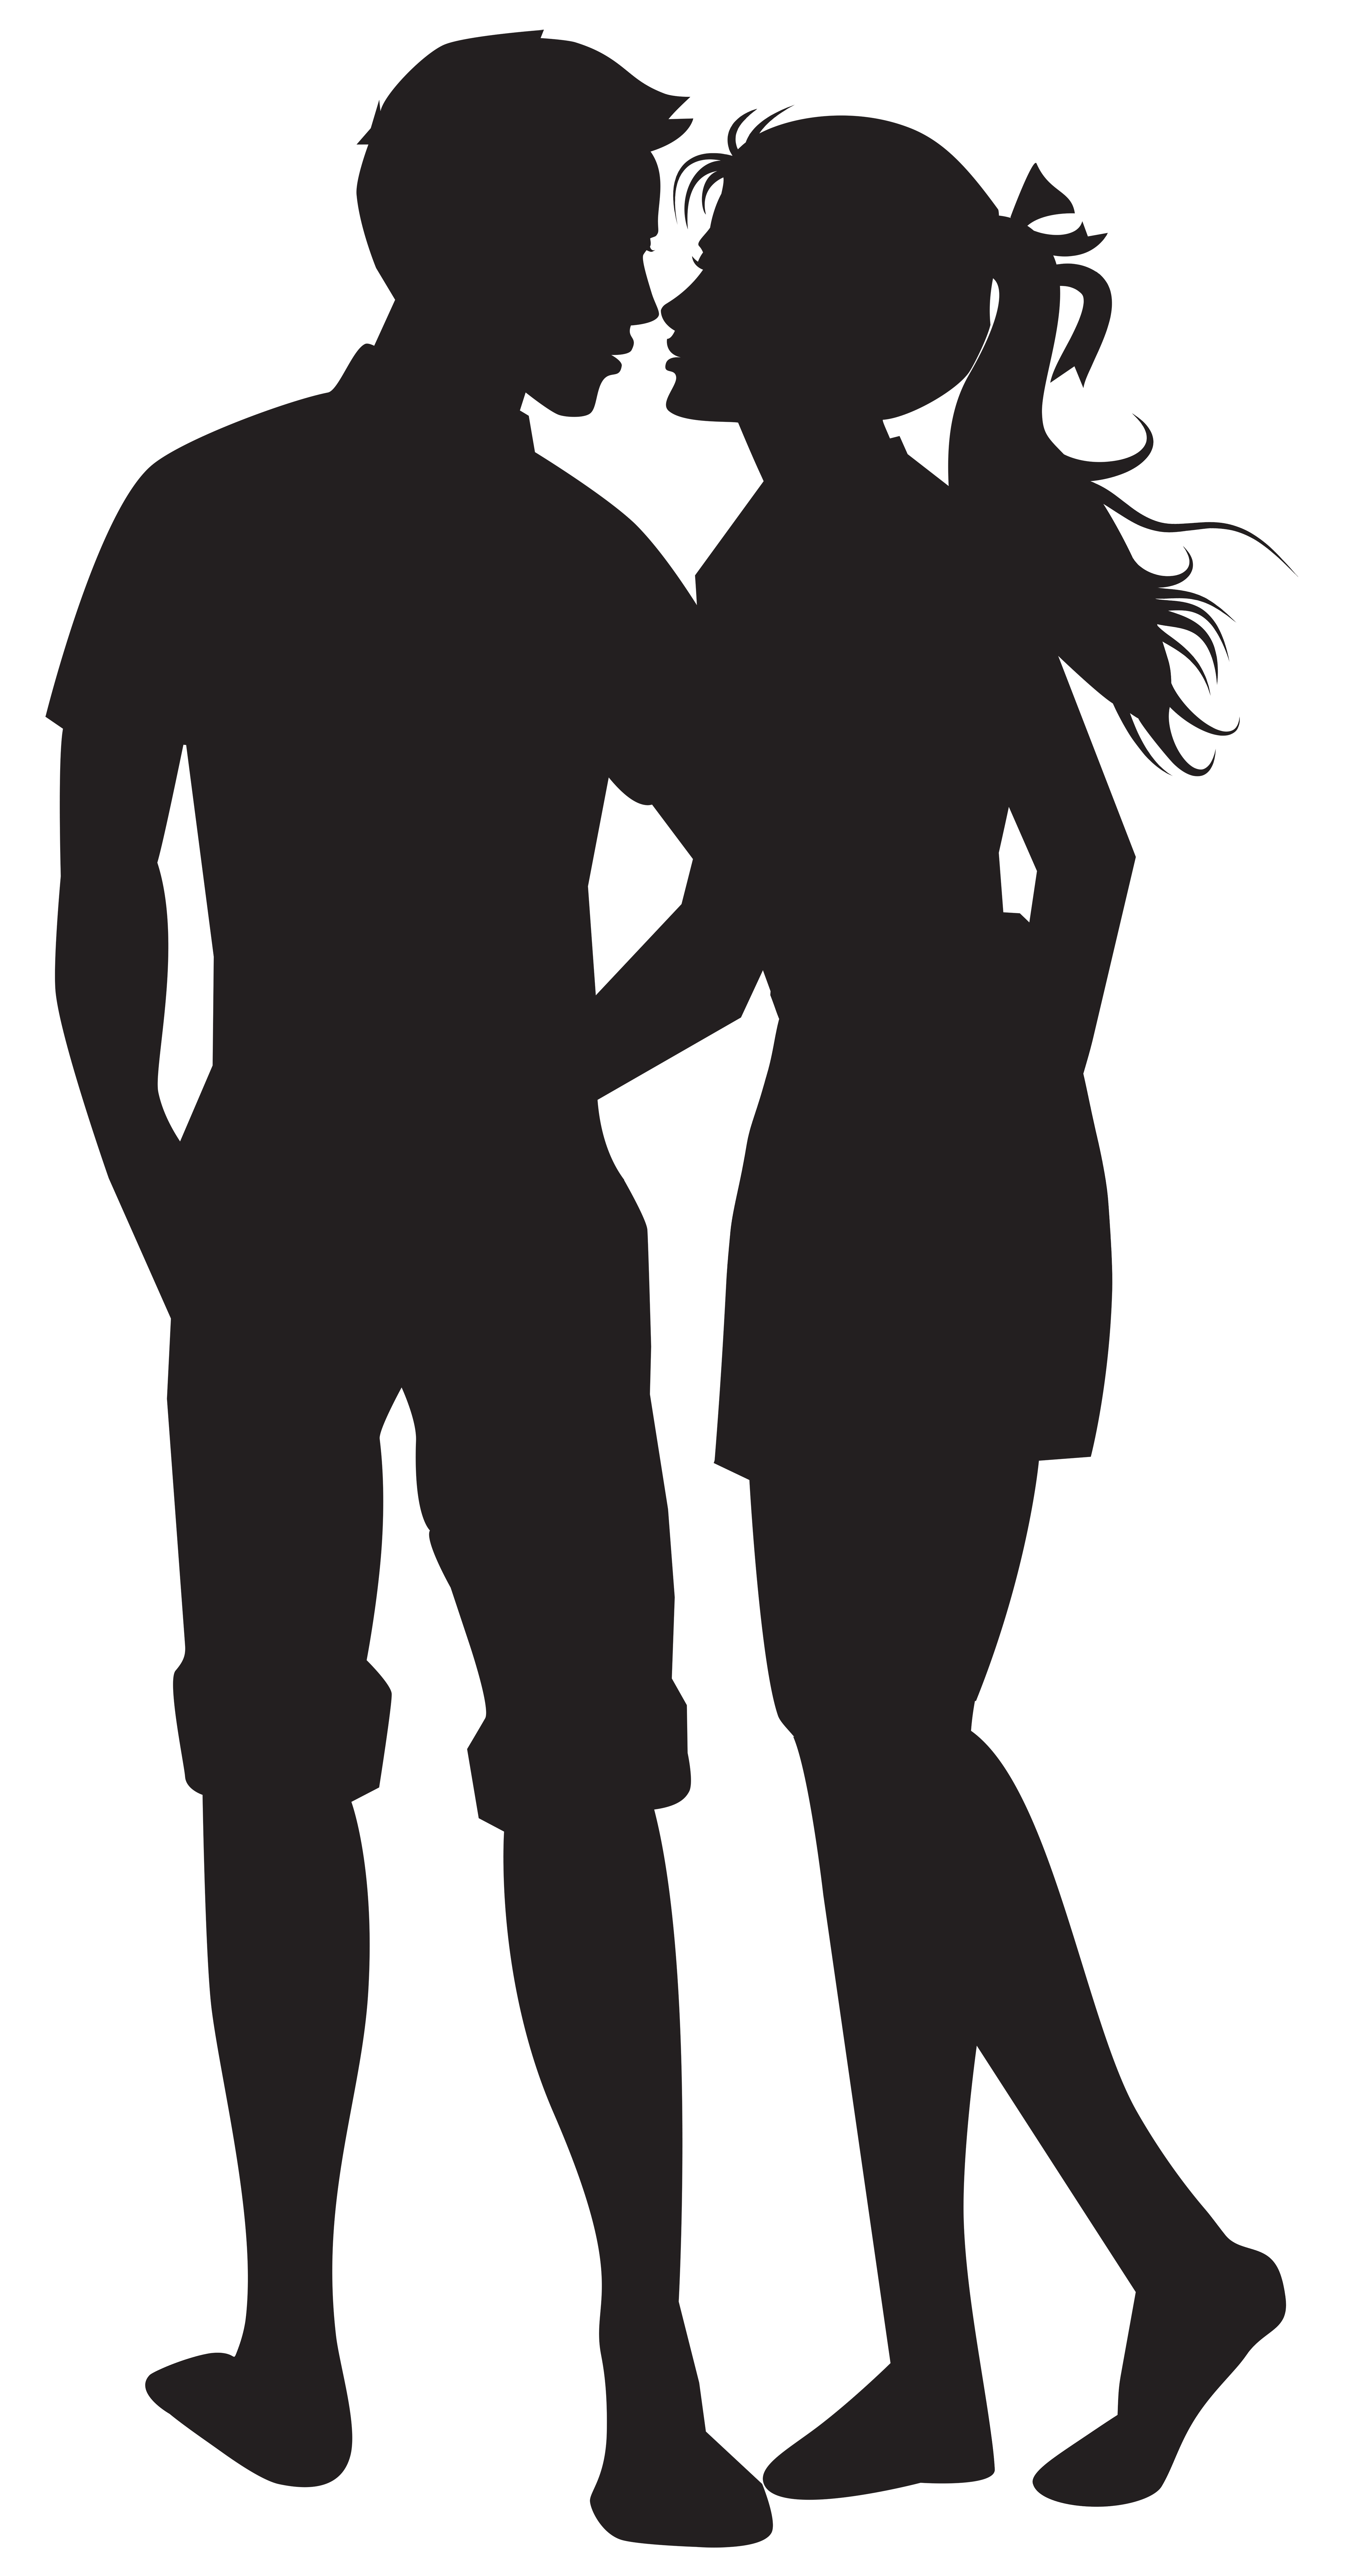 Couple PNG Silhouettes Clip Art Image.